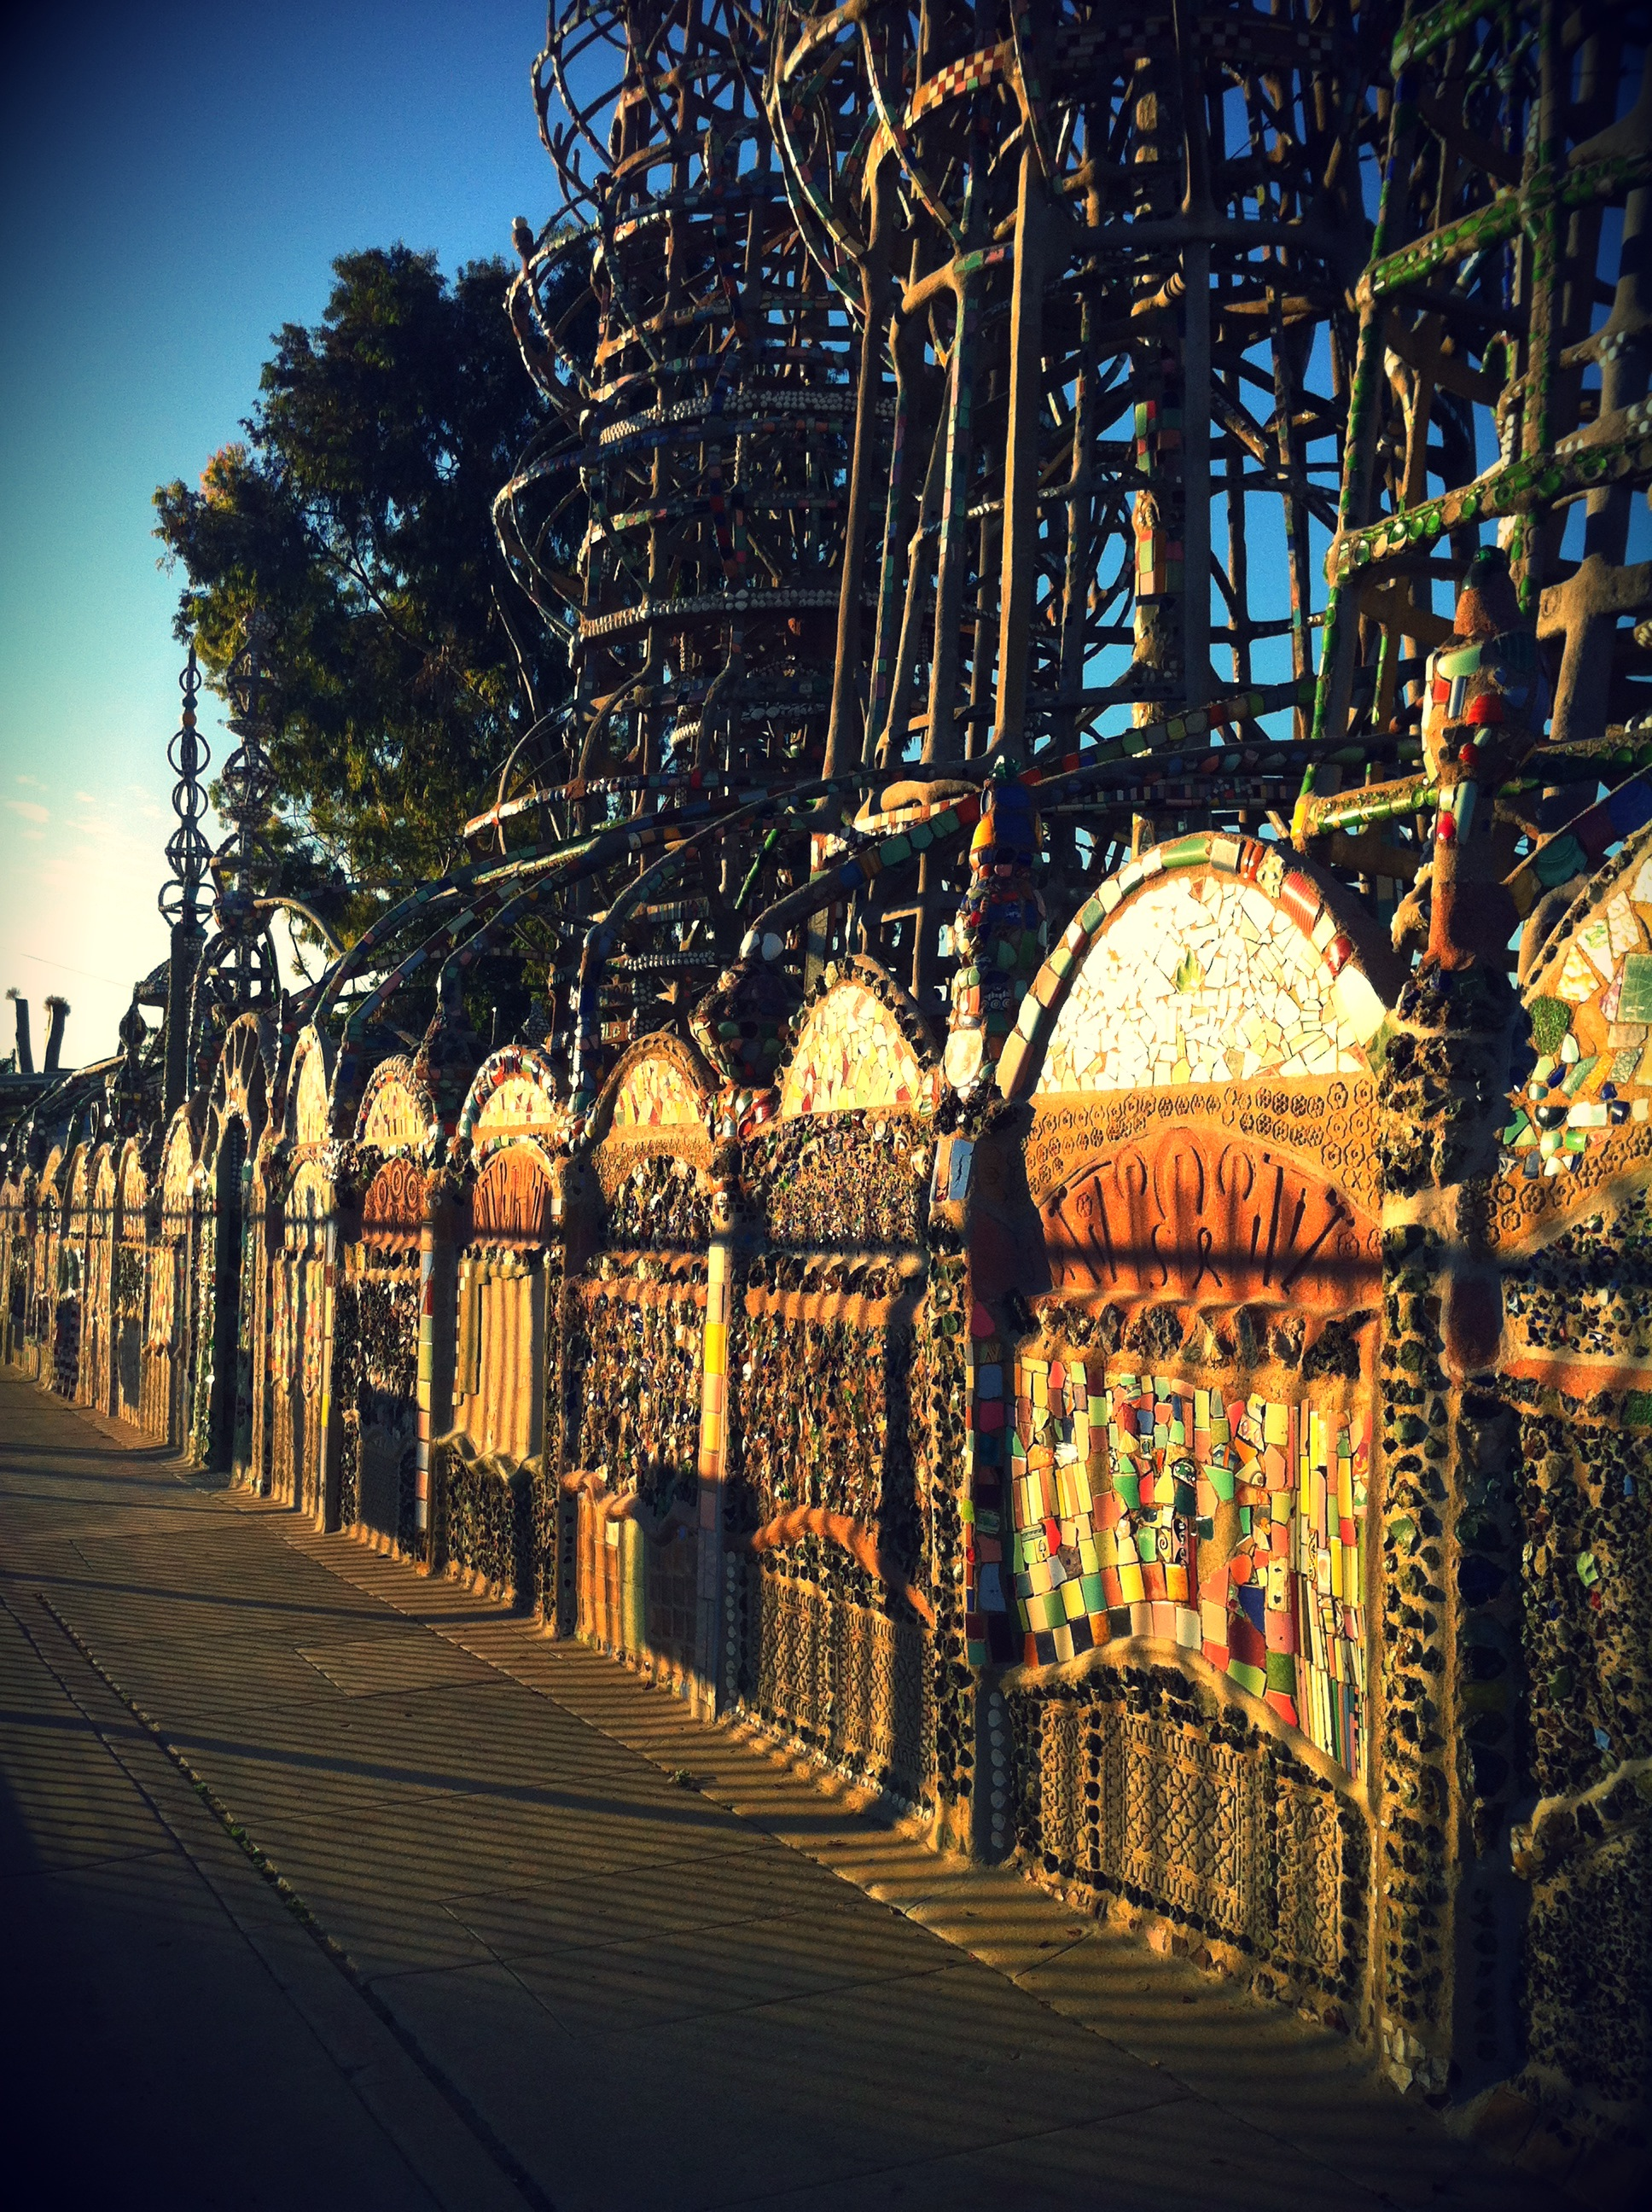 A Visit to South Central: Roscoe's & Watts Towers